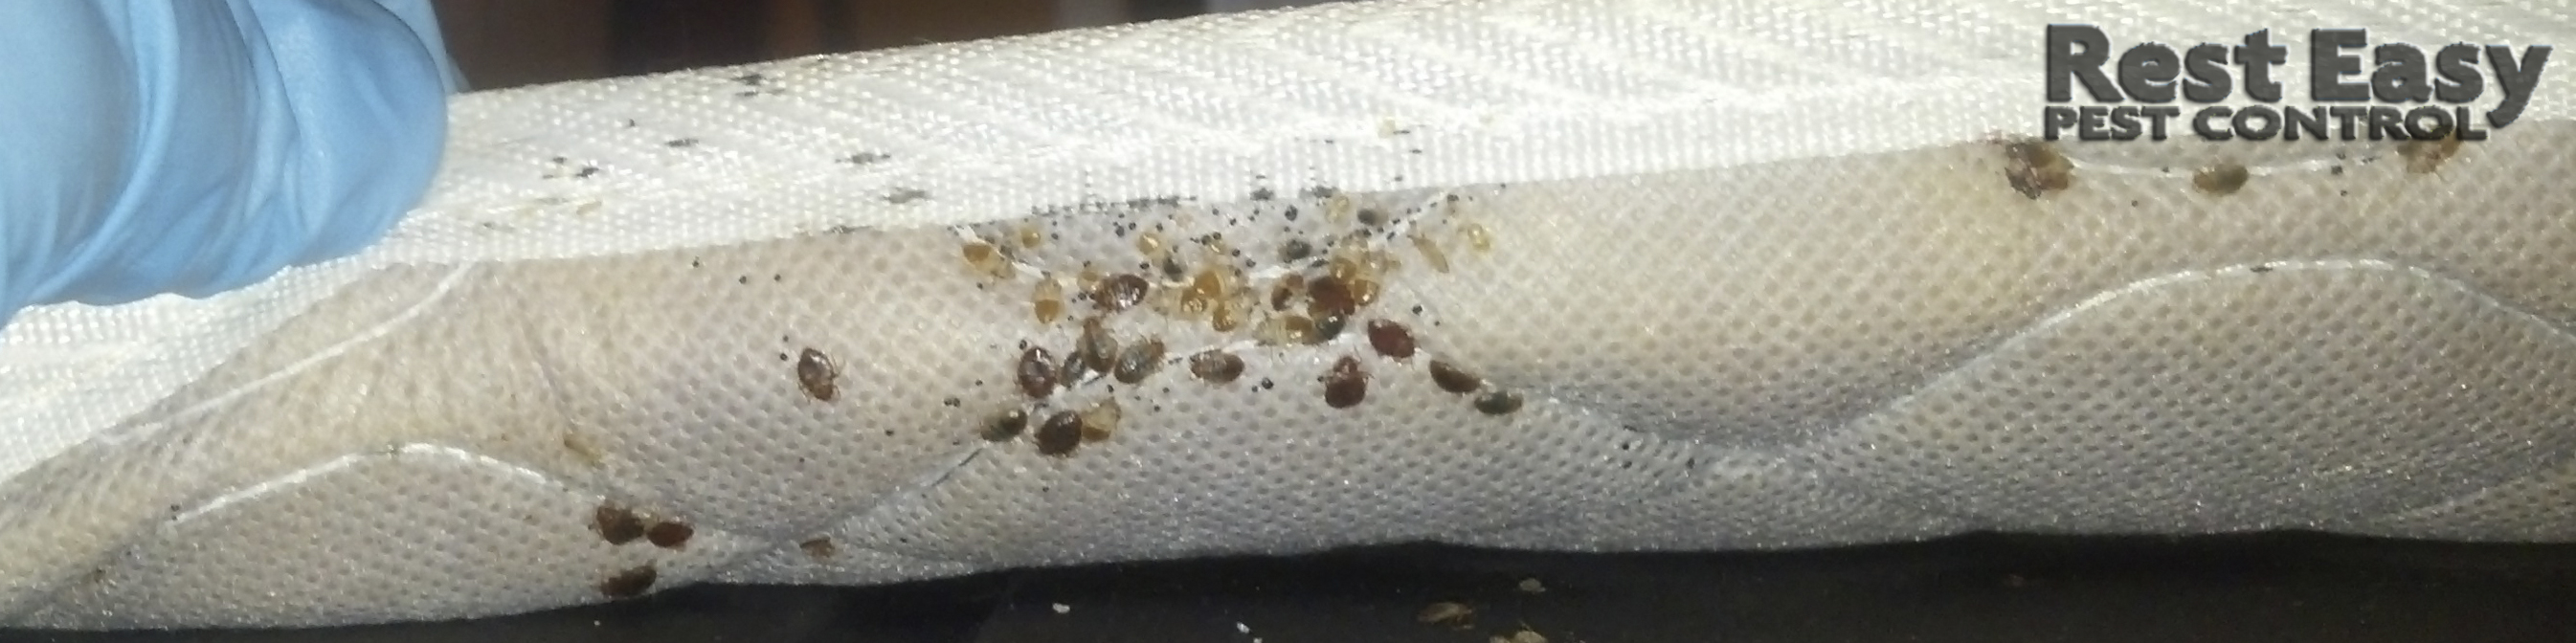 Signs of Bed bugs! Adult Bed Bugs, Bed Bugs Fecal staining